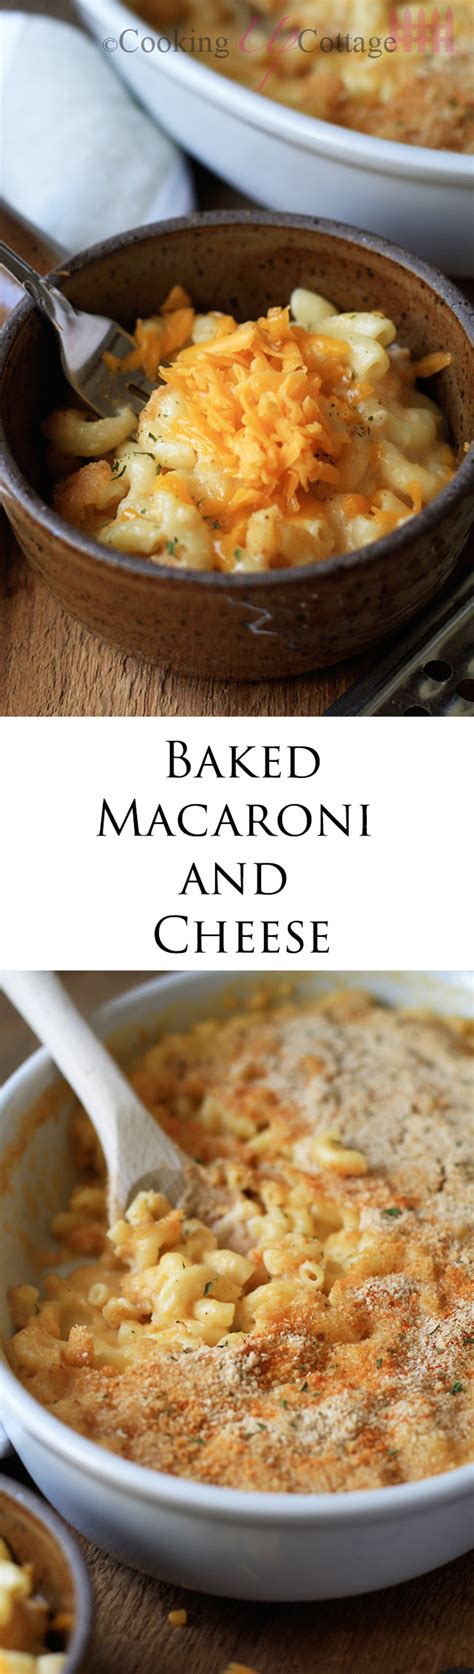 Baked Macaroni With Cottage Cheese by Baked Macaroni And Cheese Cooking Up Cottage